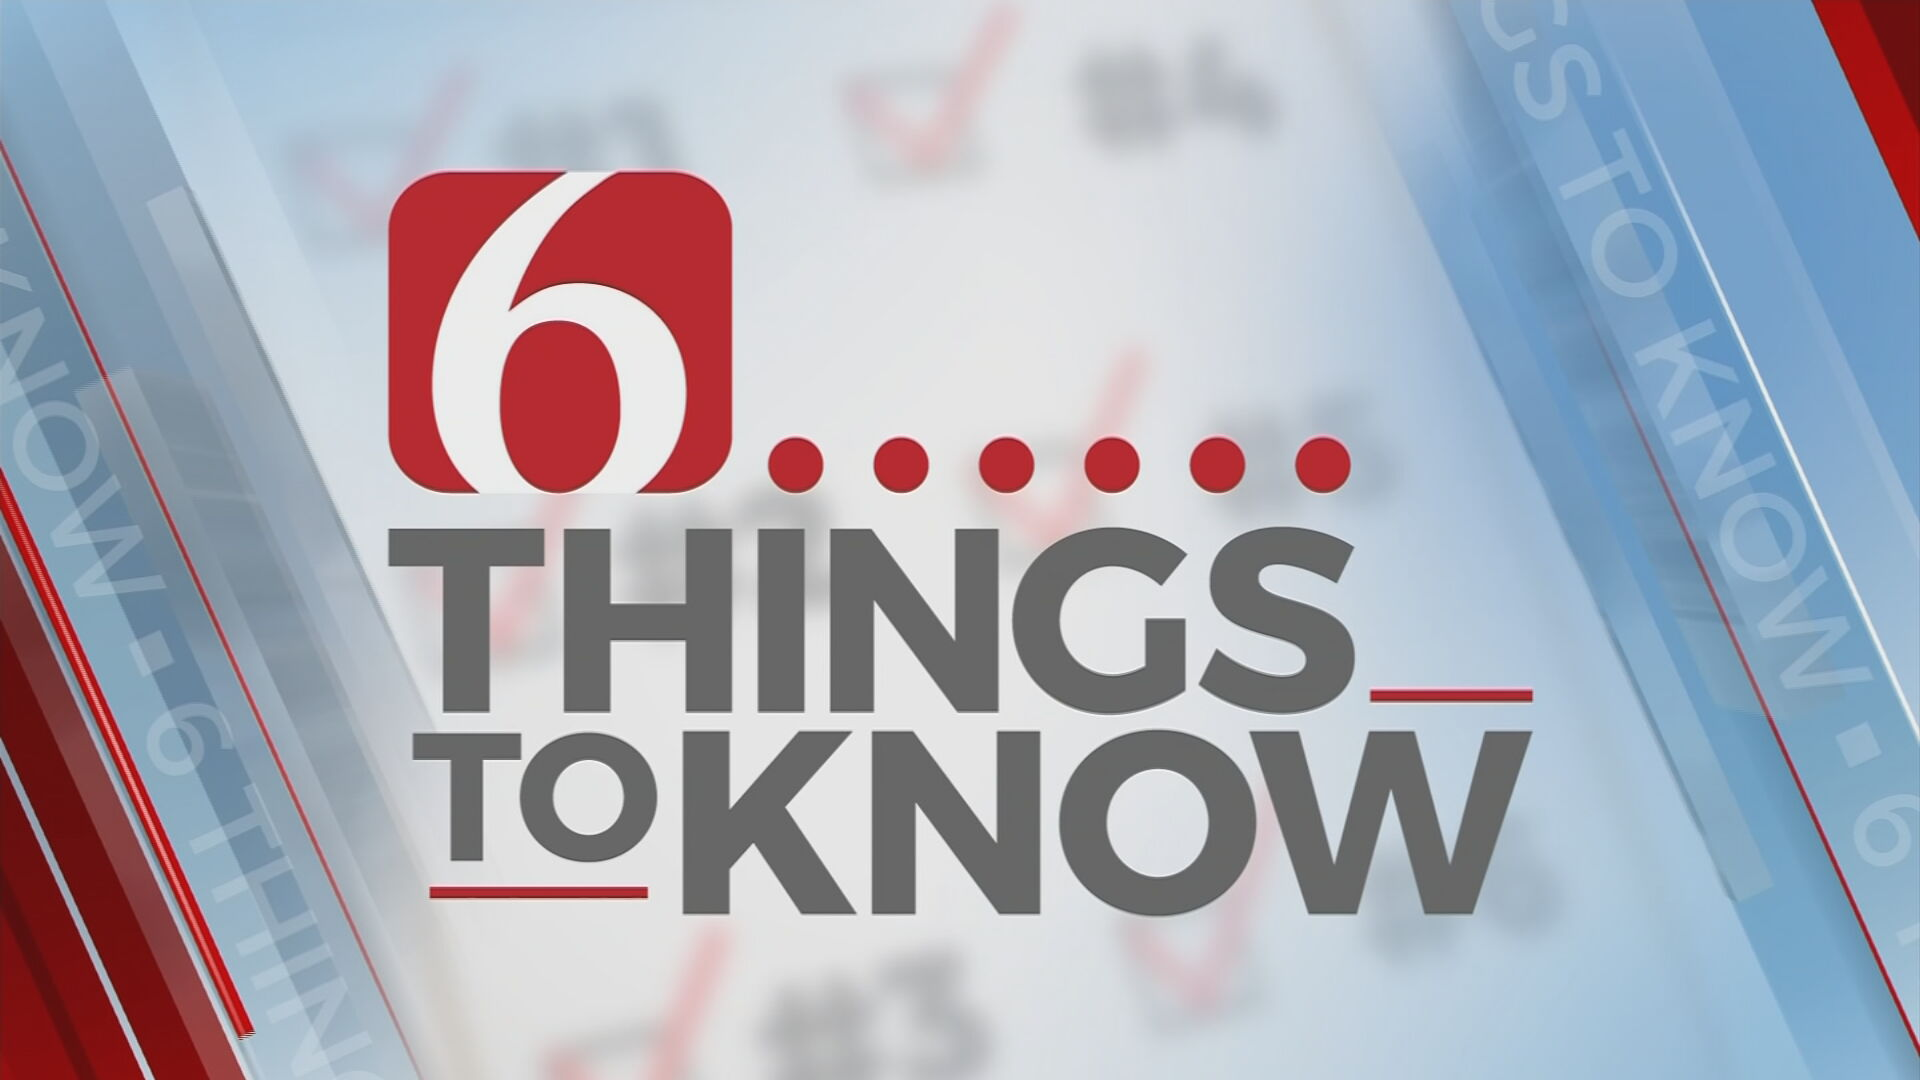 6 Things To Know (March 4): Oklahoman To Receive Star Of Valor